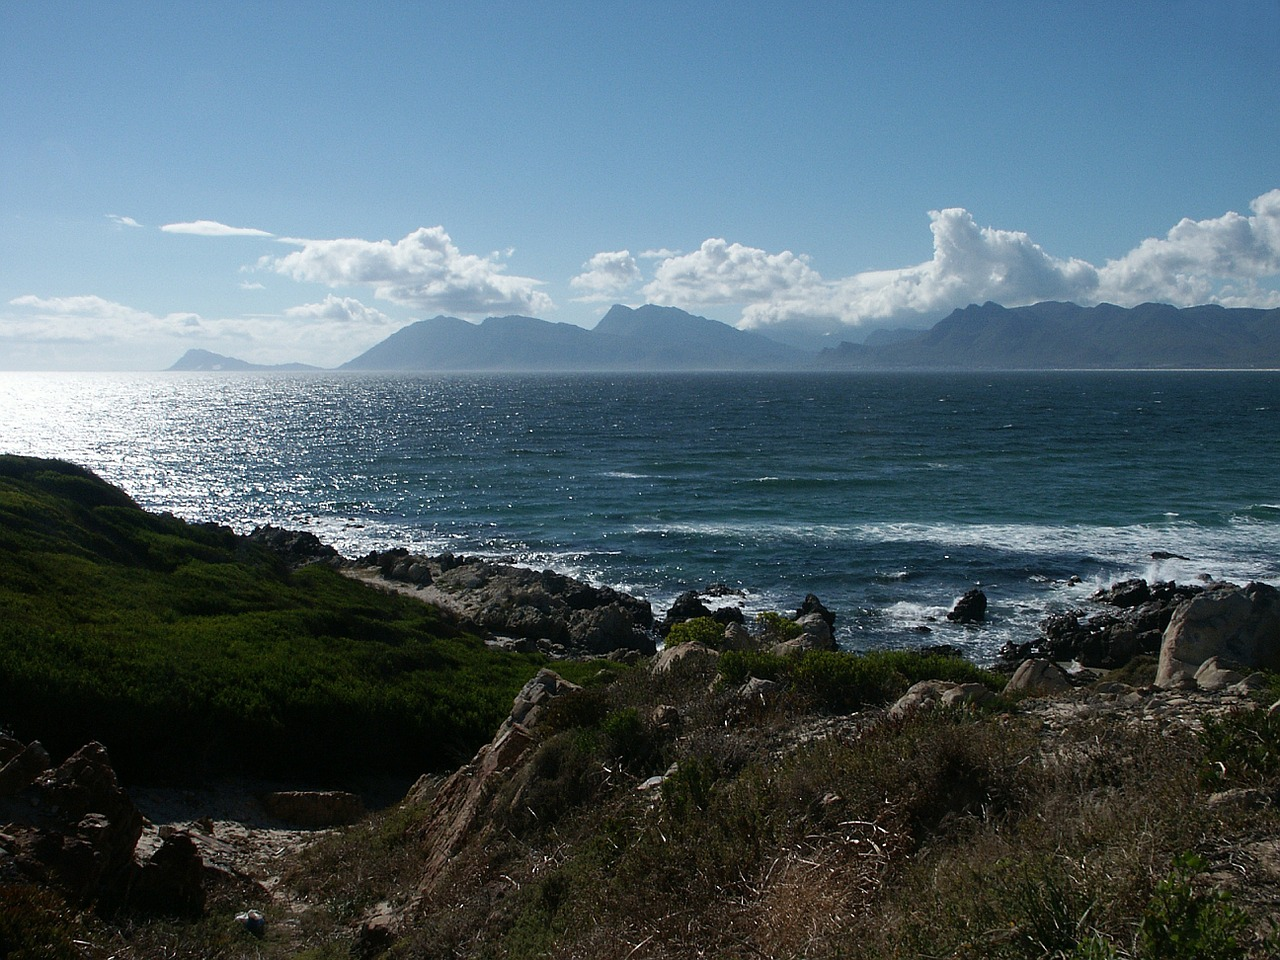 south-africa-200520_1280